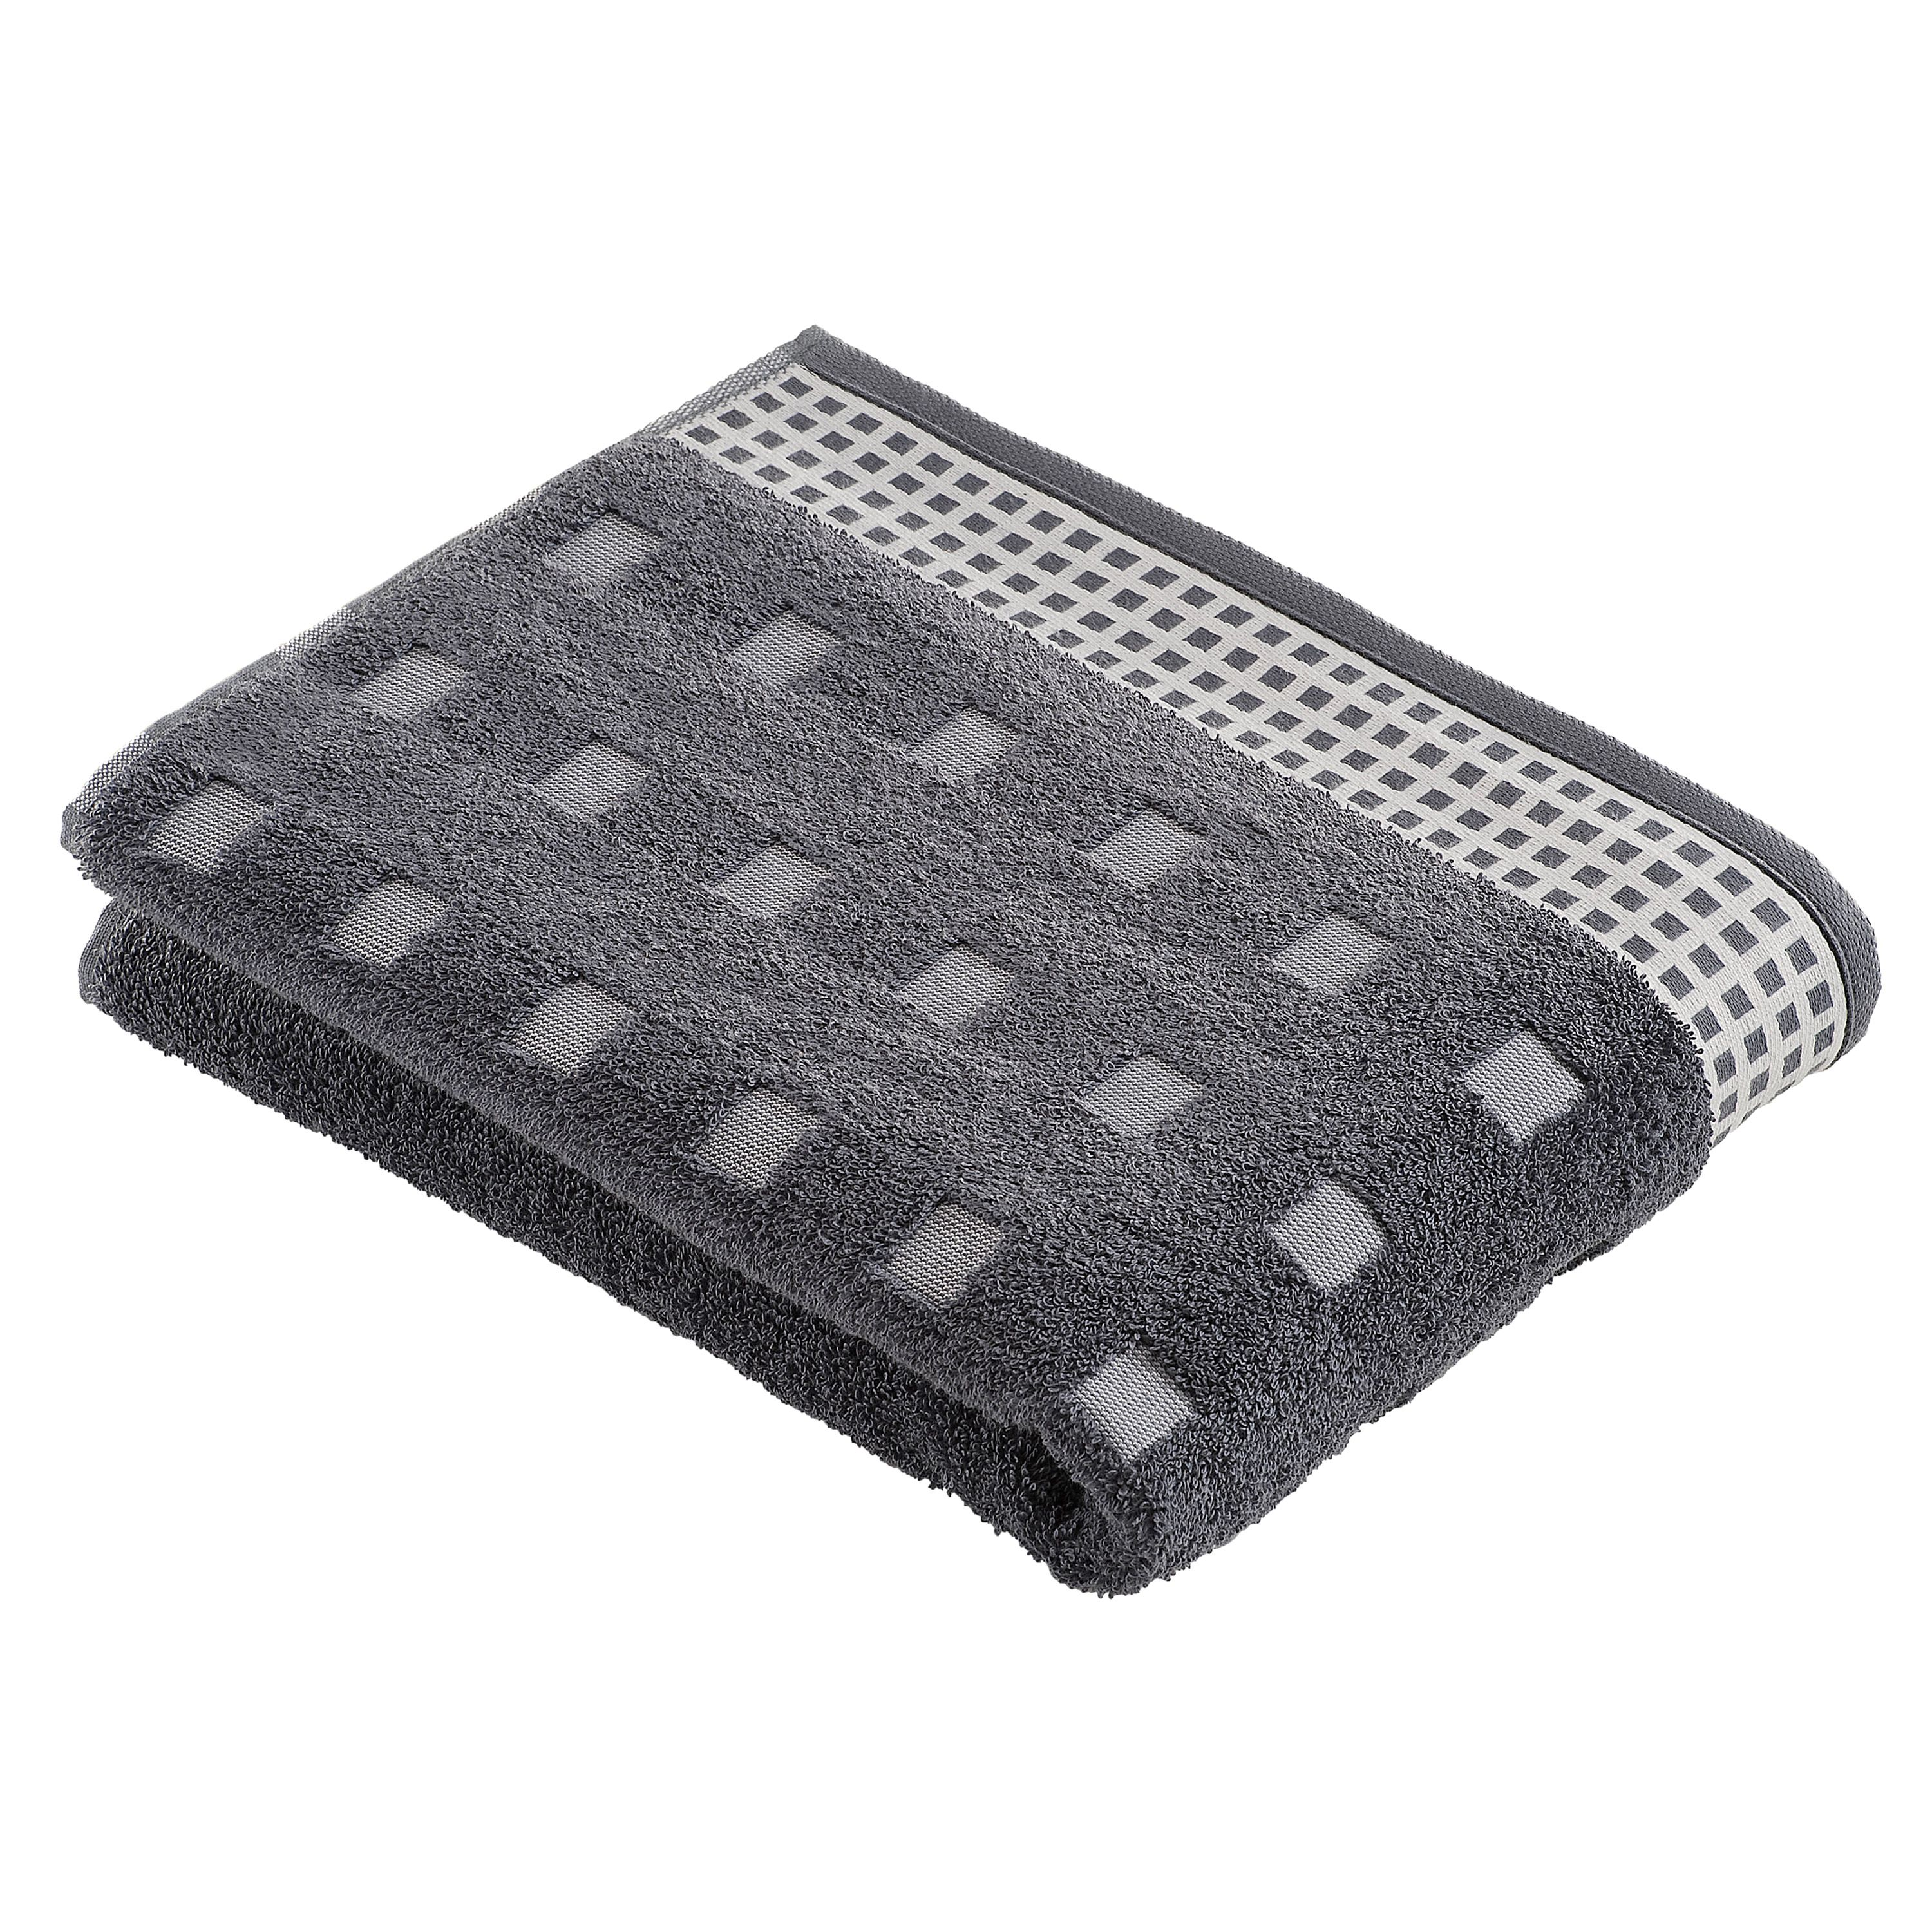 Country towel range in charcoal